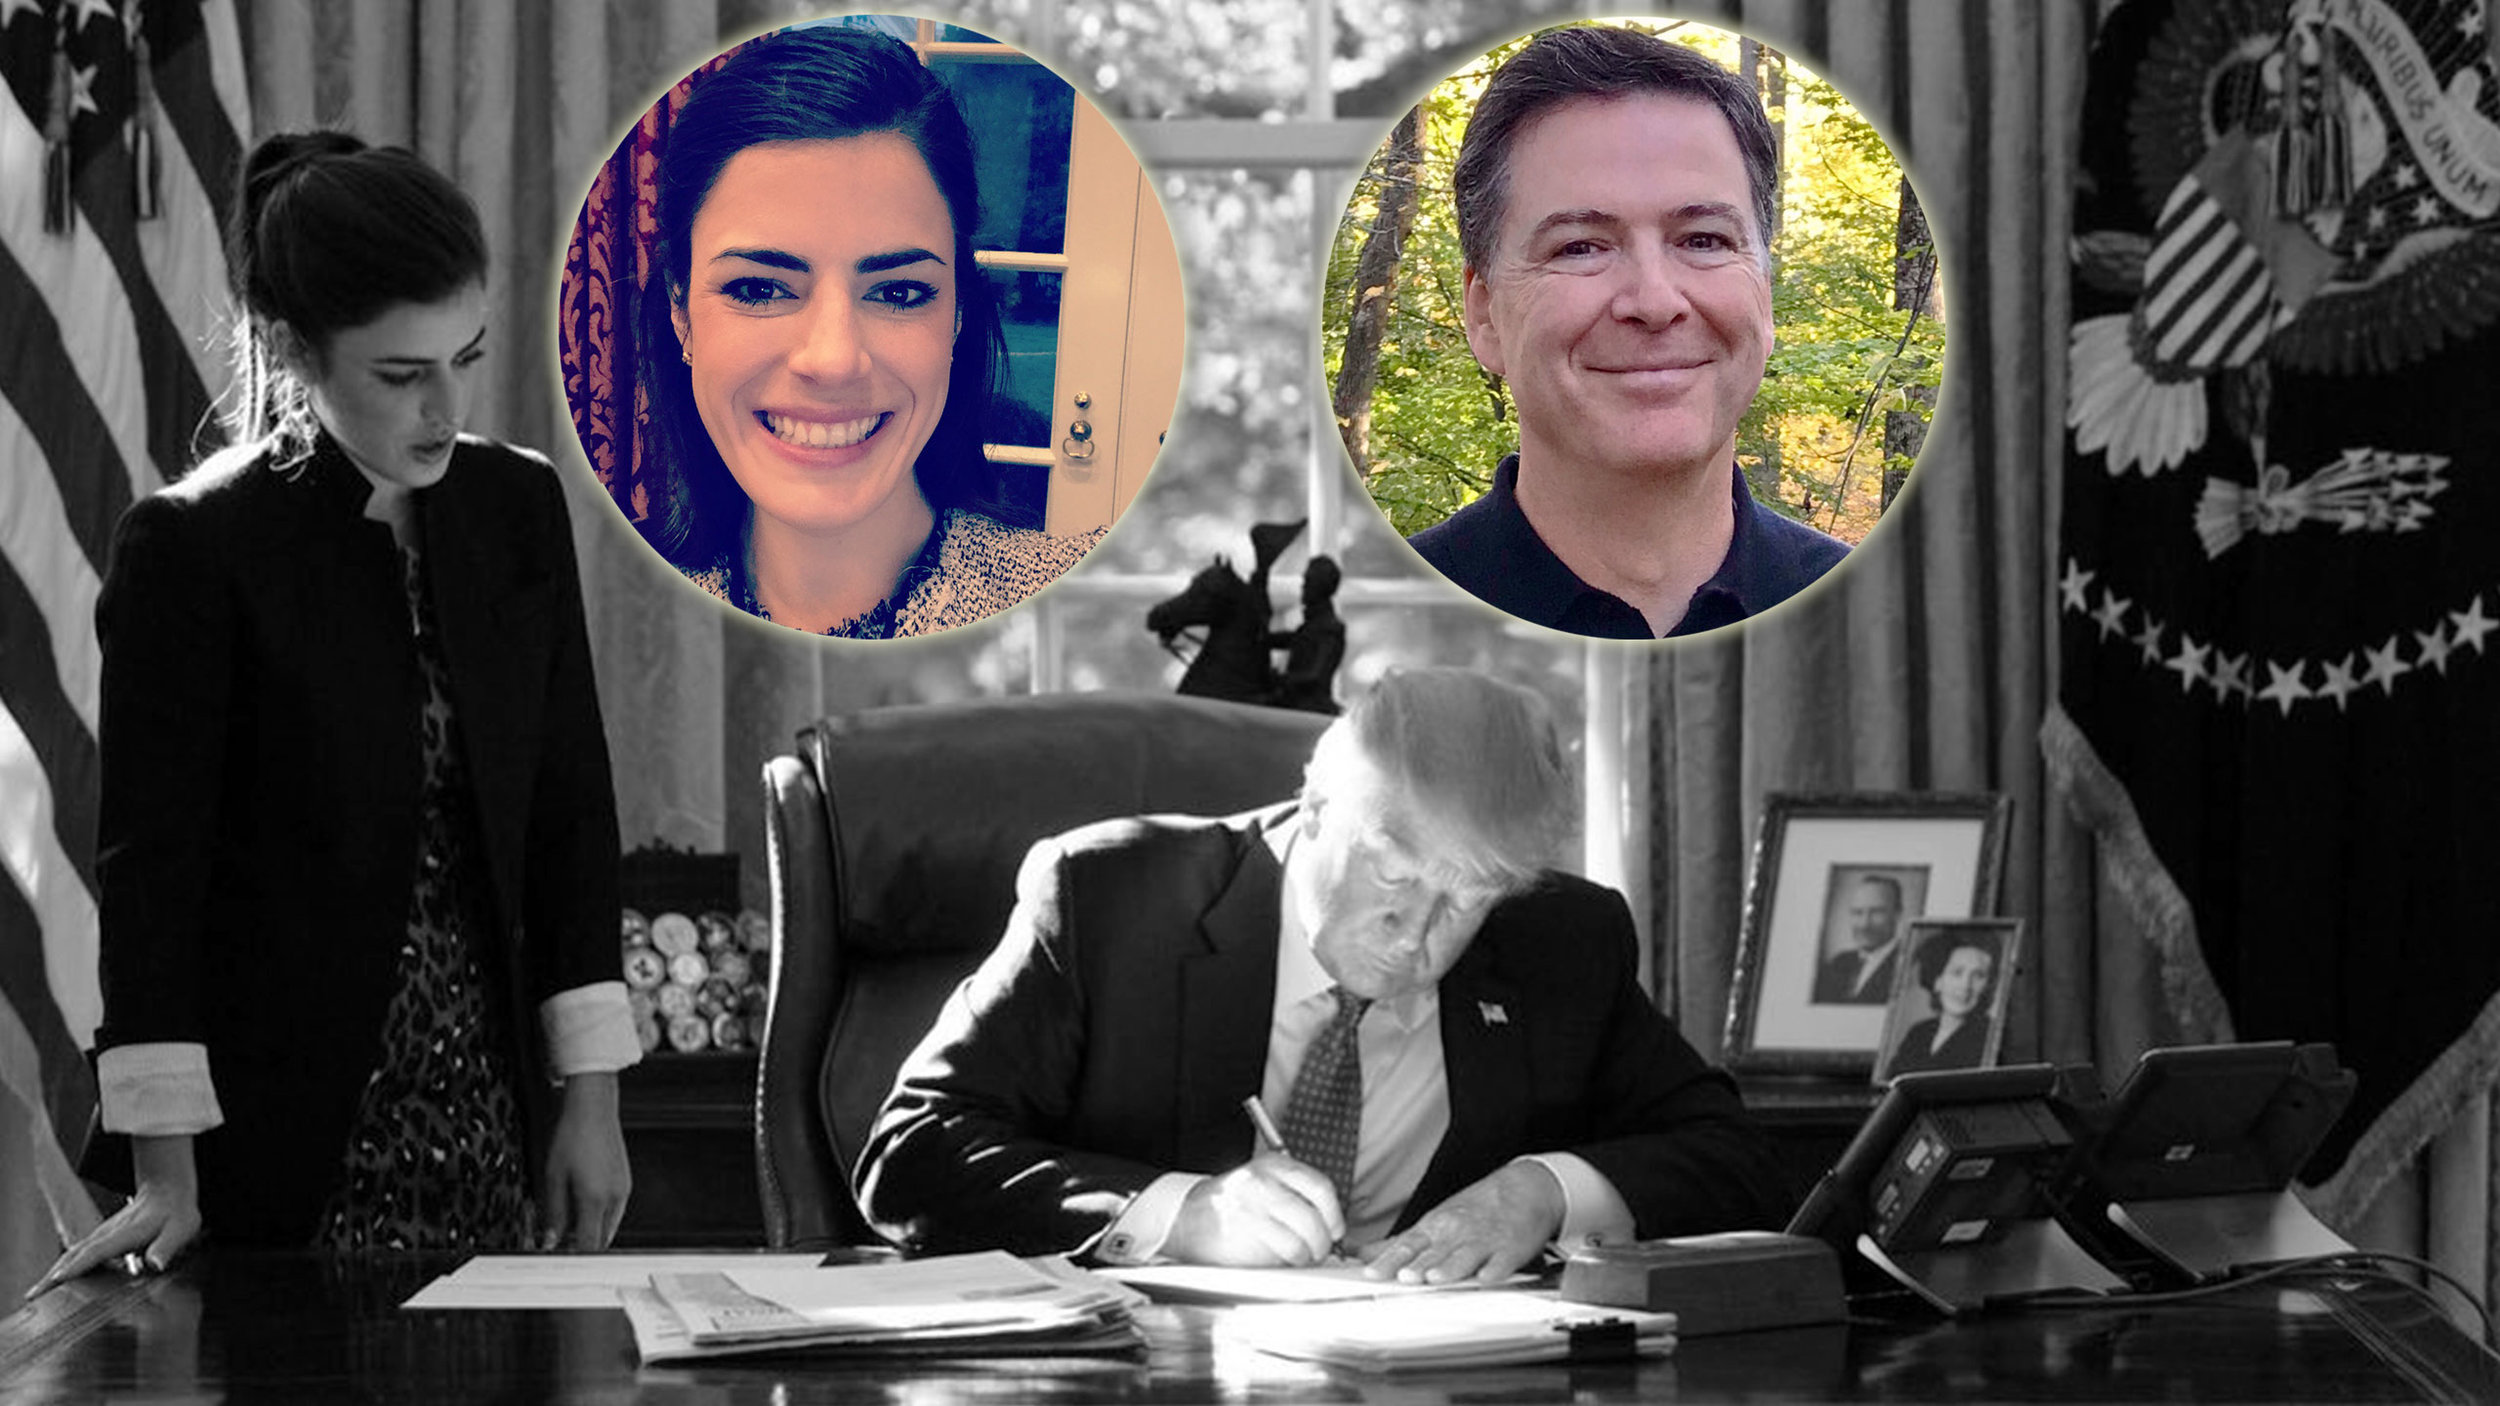 Trump's working and they're leaking! Photographed: Leakin' James Comey and reported Oval Office leaker Madeleine Westerhout!